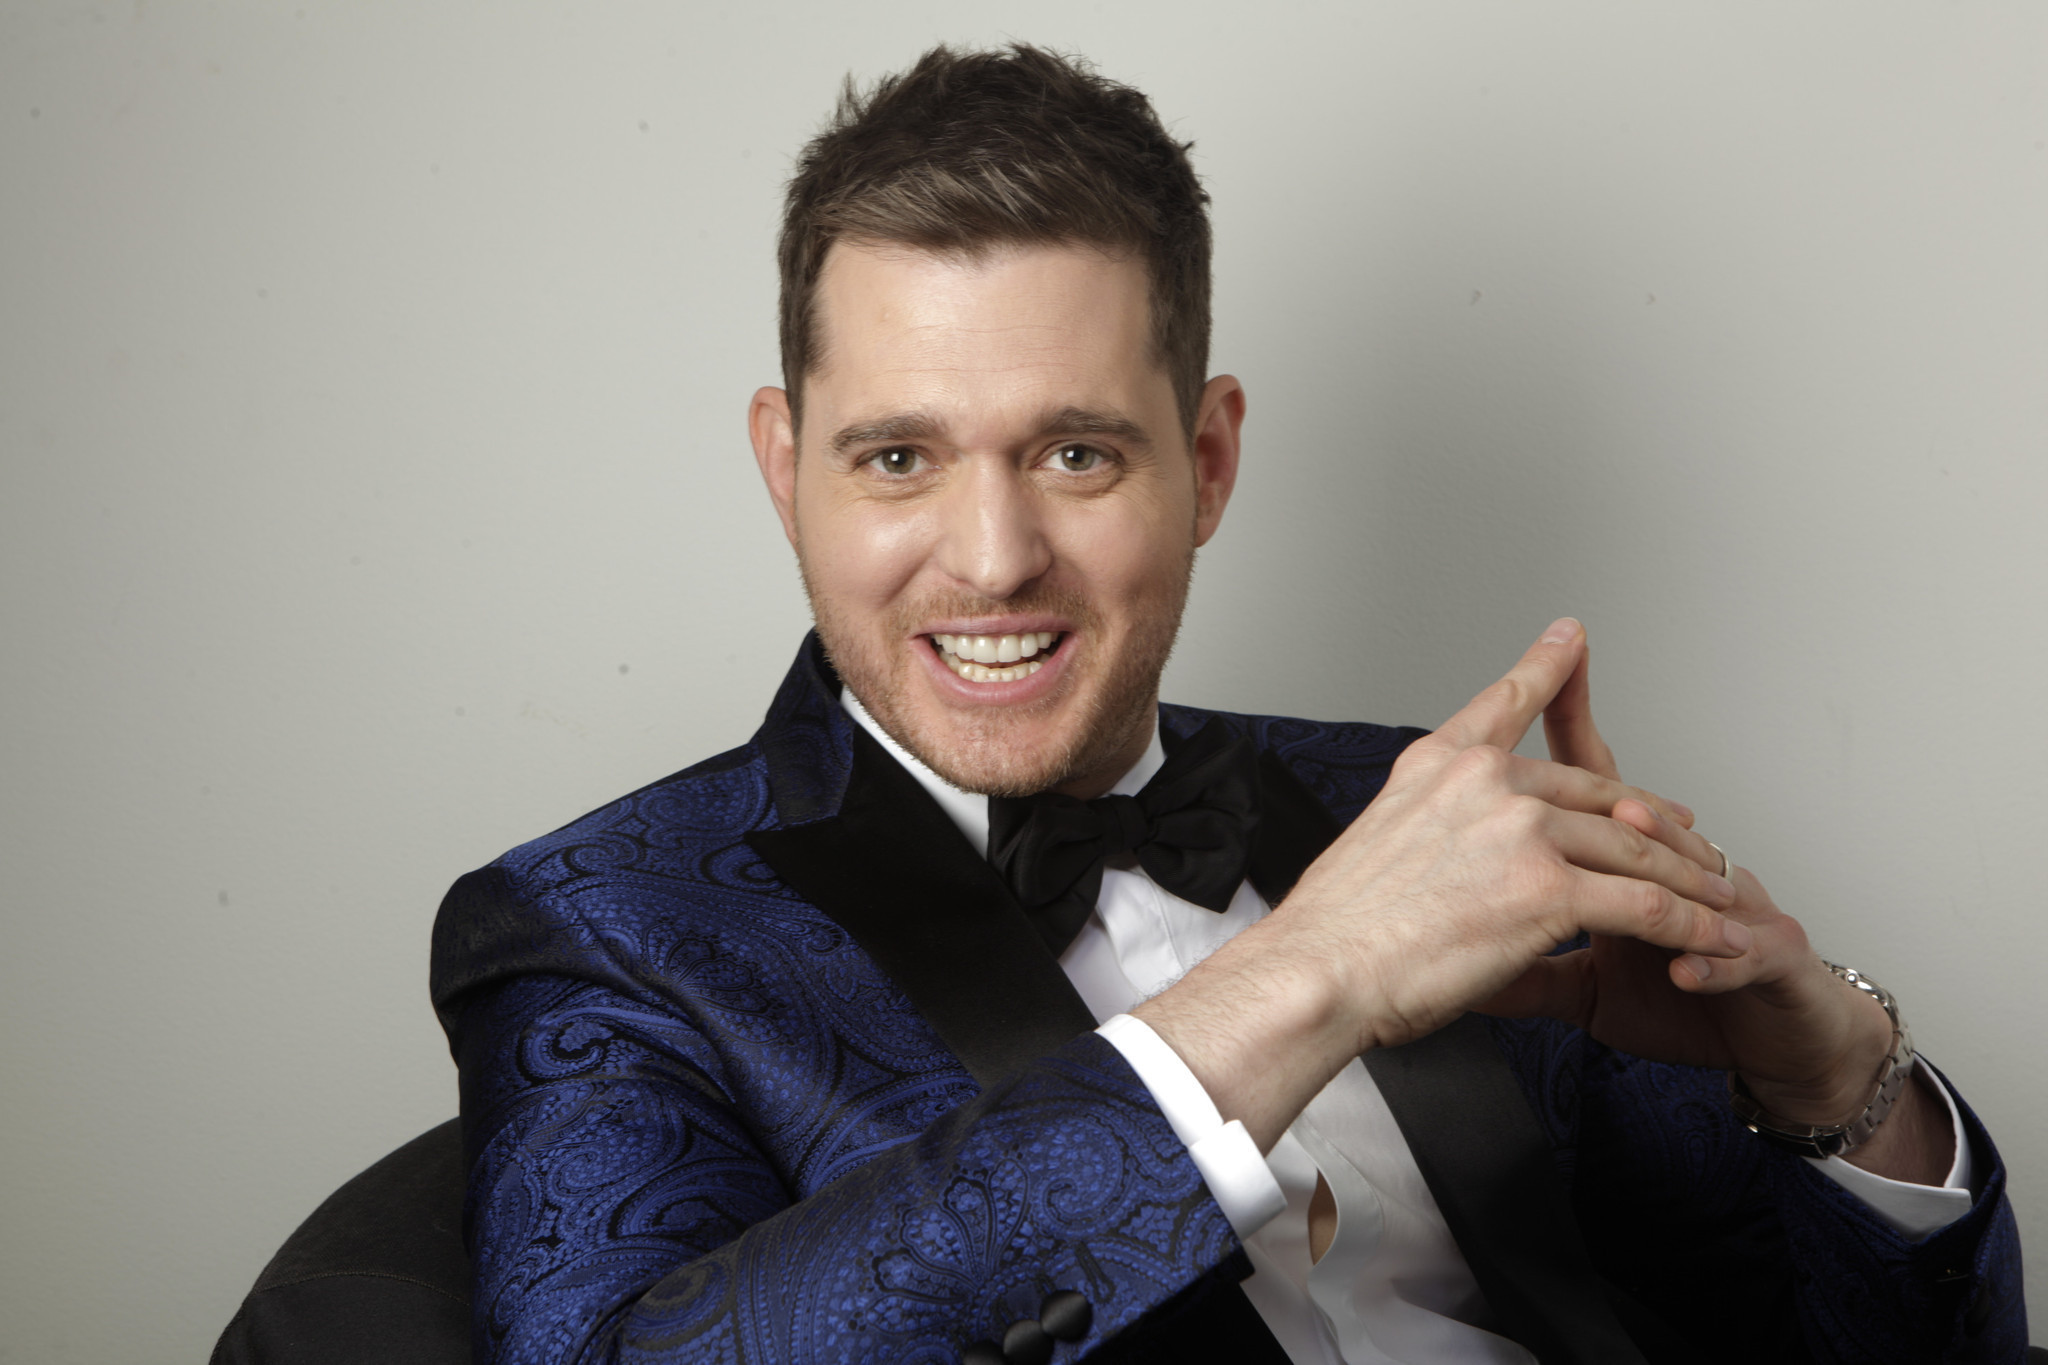 Michael Bublé is expecting second child with wife Luisana Lopilato ...